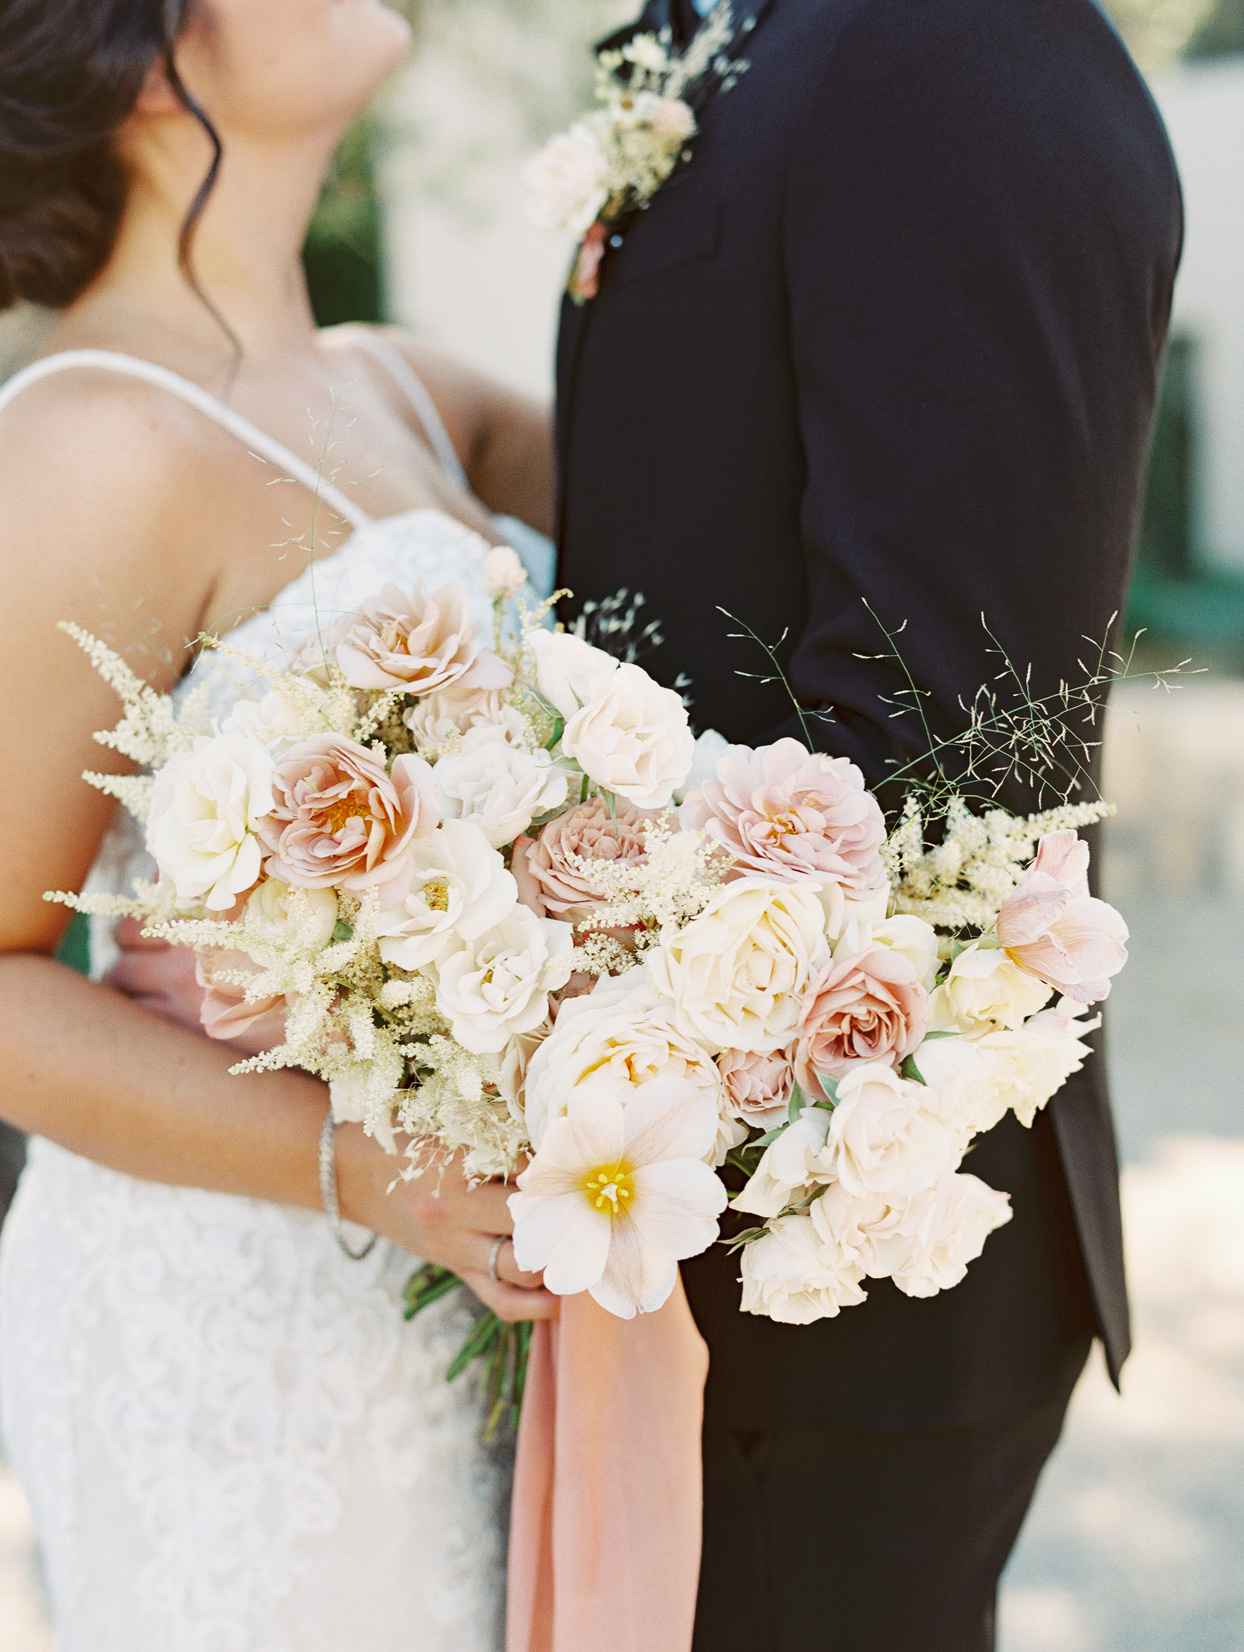 Bride holding a bouquet with Italian pit, explosion grass, garden spray roses, spray roses, garden roses, tulips, carnations, astilbe, and preserved florals